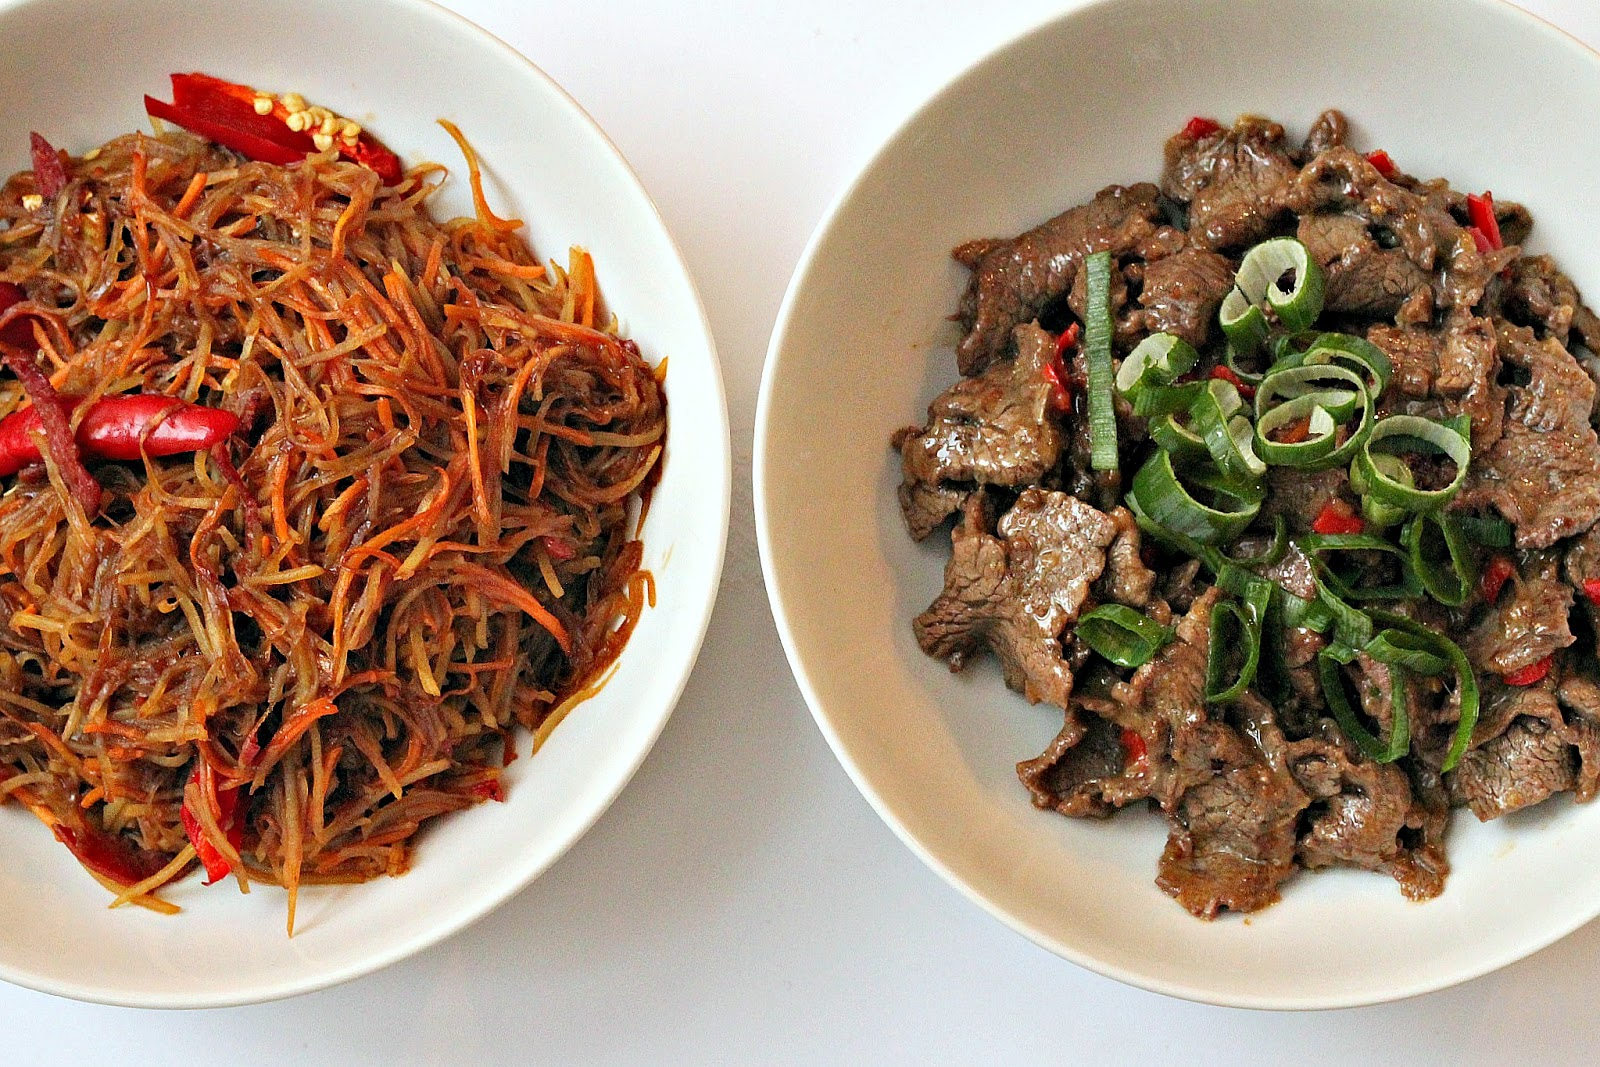 Milk and Honey: Hunan Beef with Cumin and Stir-Fried Shredded Potatoes